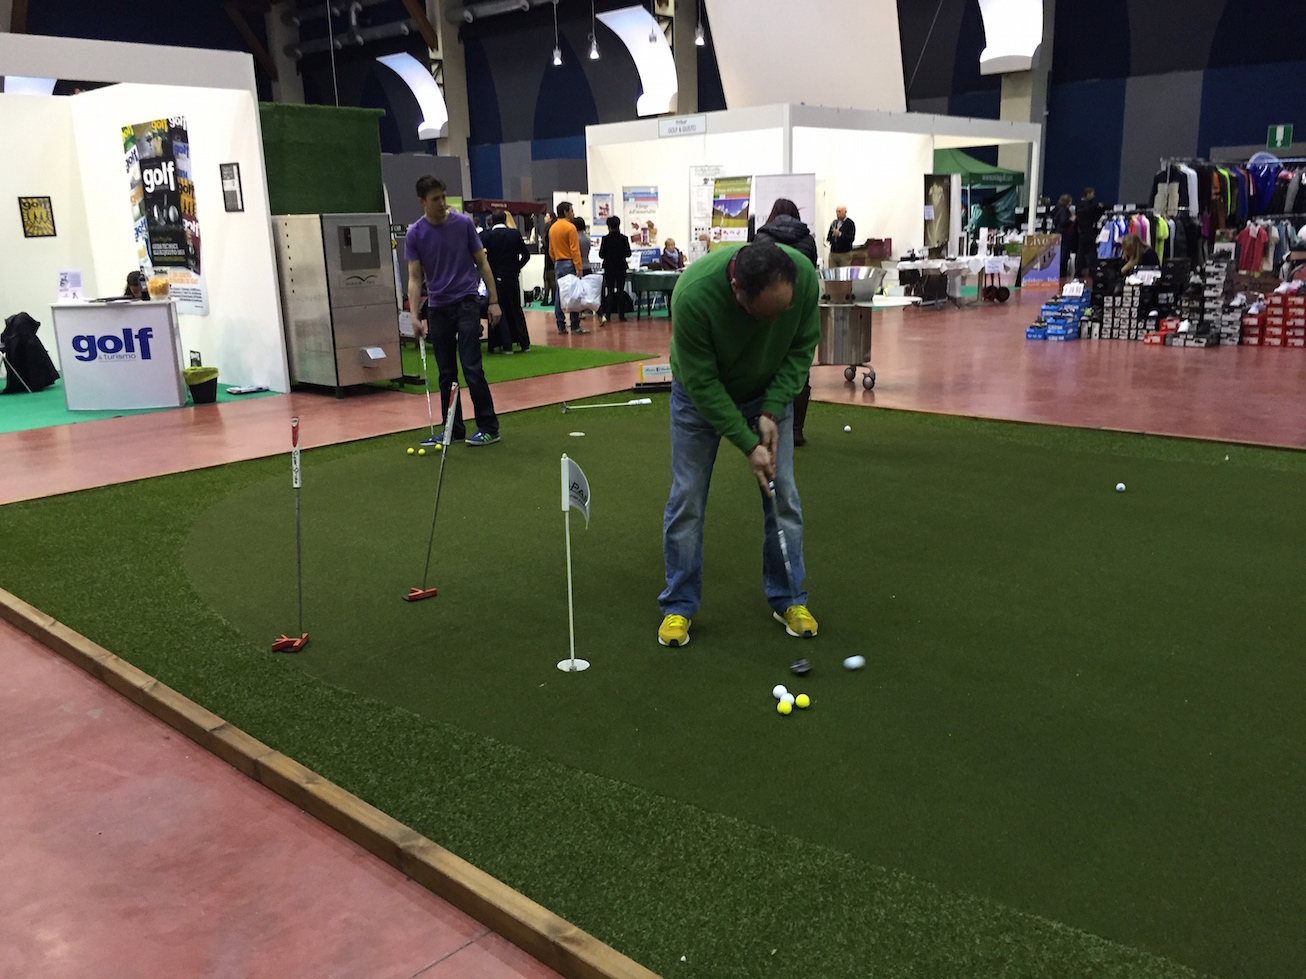 Fiera del Golf Parma 2015 le foto ed i video di Italian Golf Show e le prove dei materiali55 - Fiera del Golf Parma: le foto ed i video di Italian Golf Show